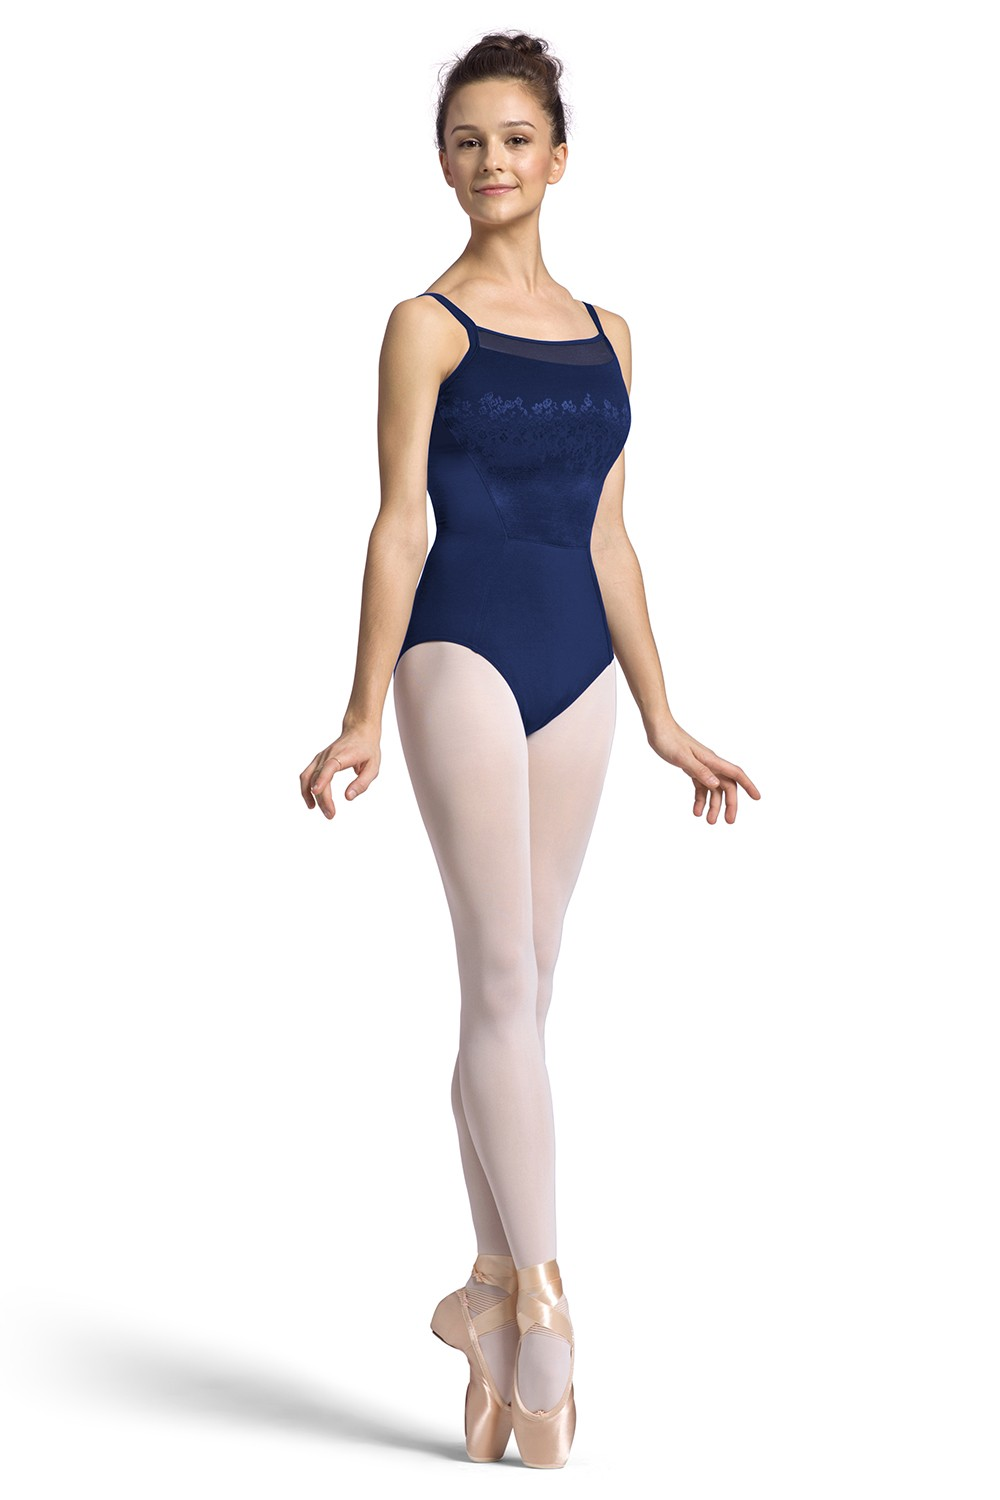 Feline Womens Camisole Leotards